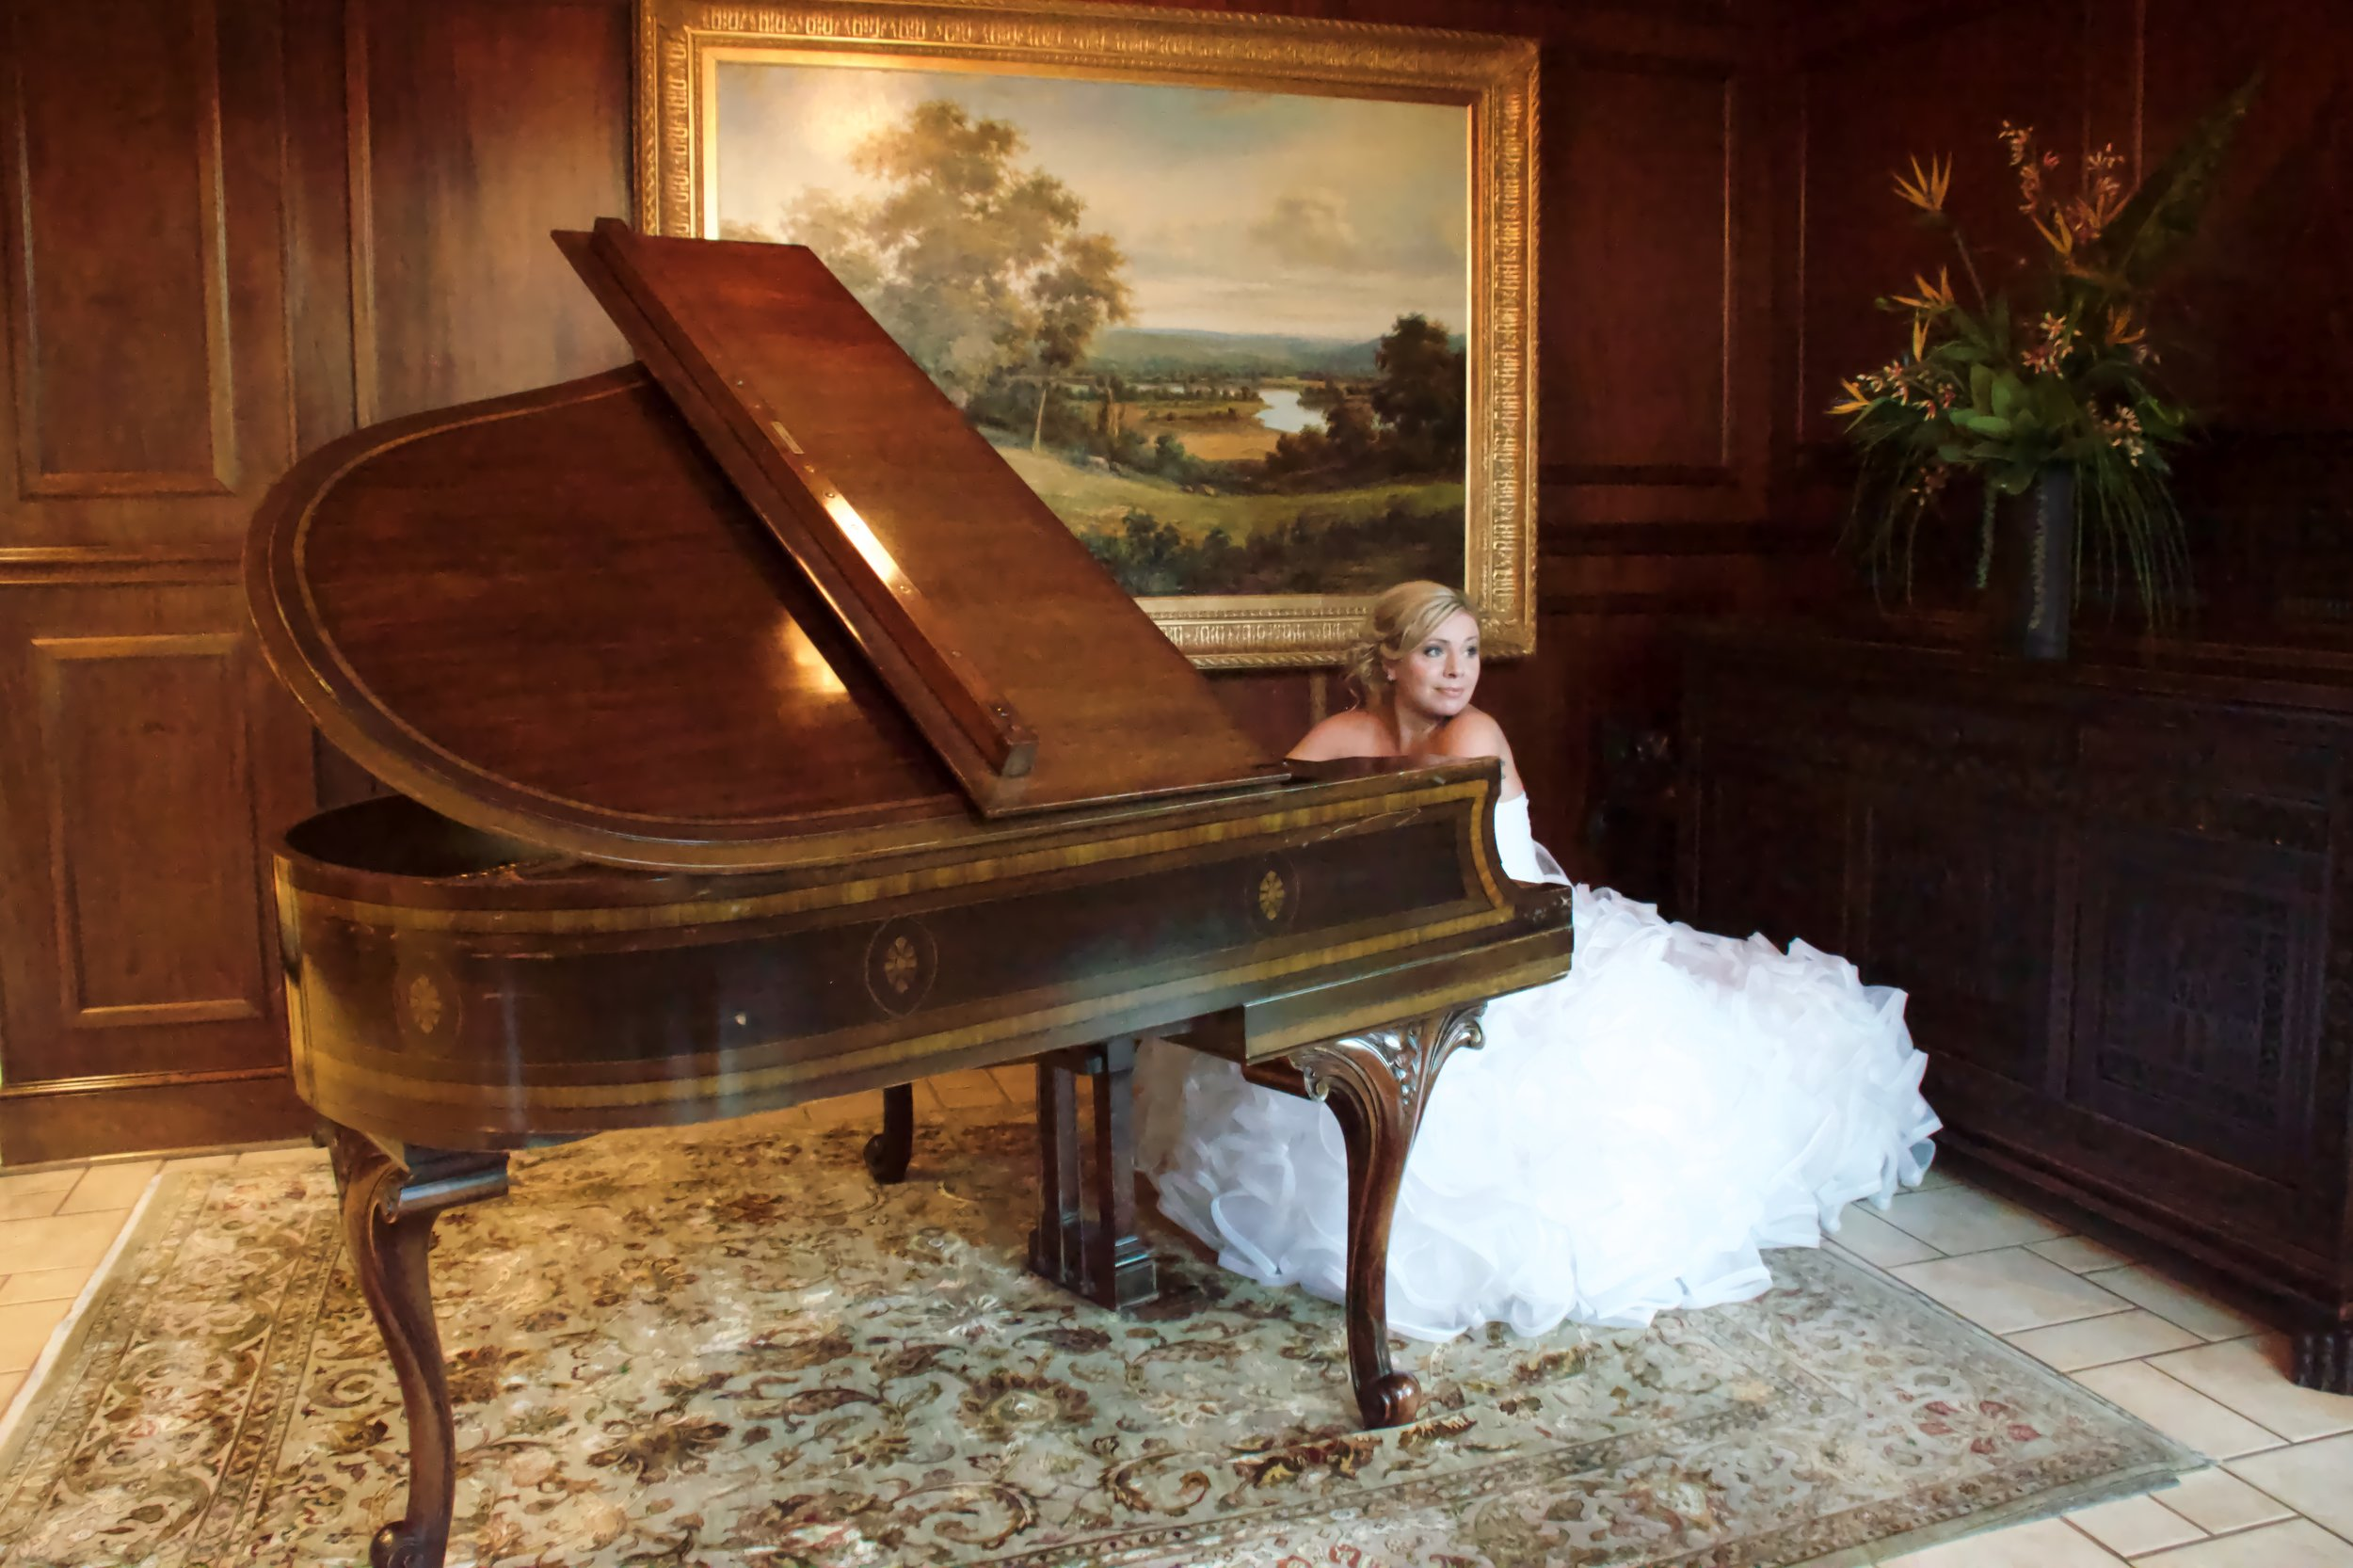 Bride at an antique piano